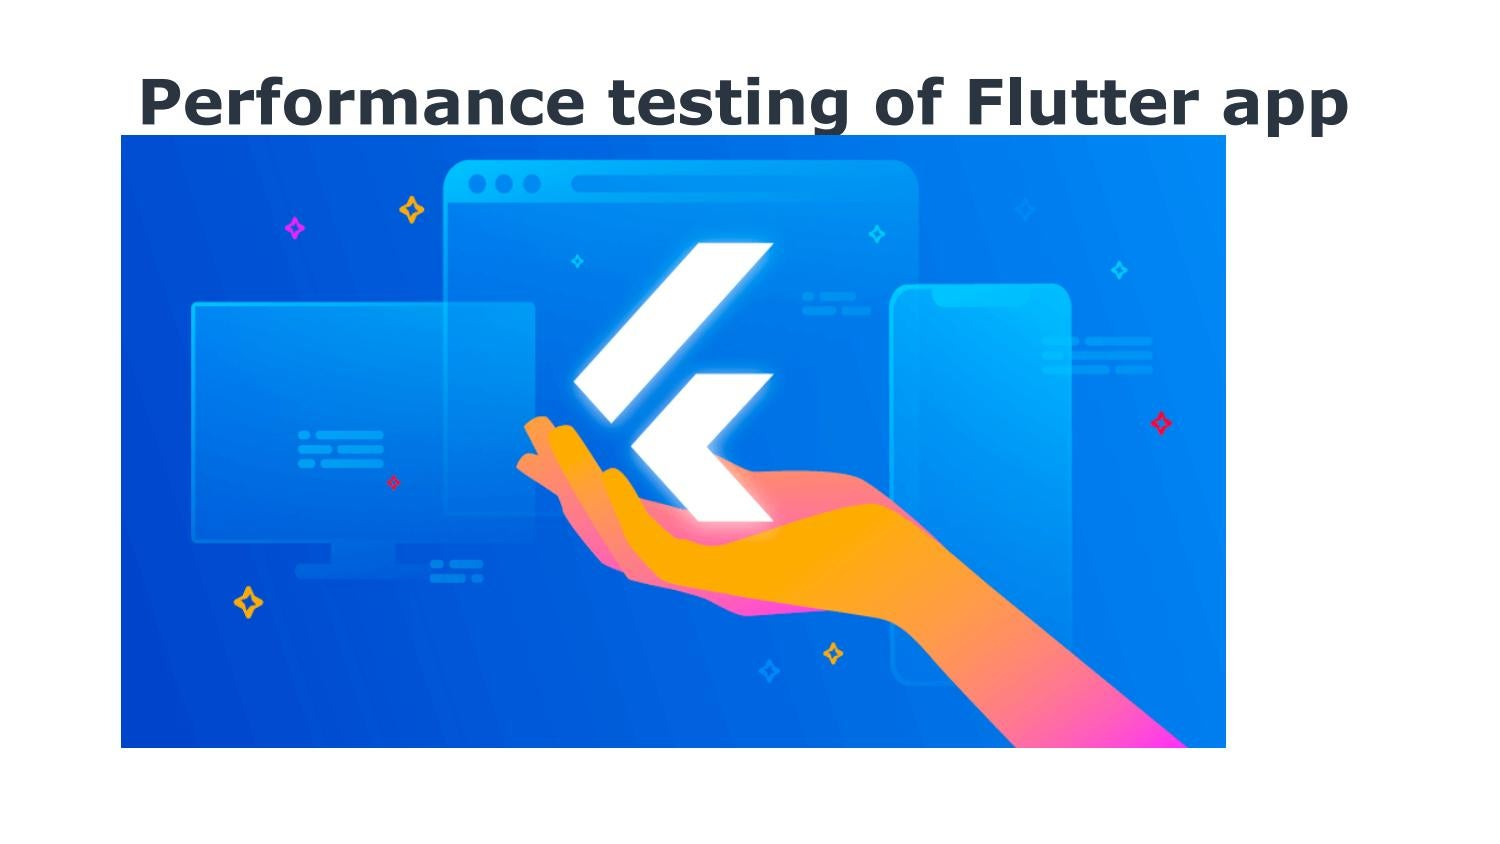 Performance testing of Flutter app by Concetto Labs - issuu